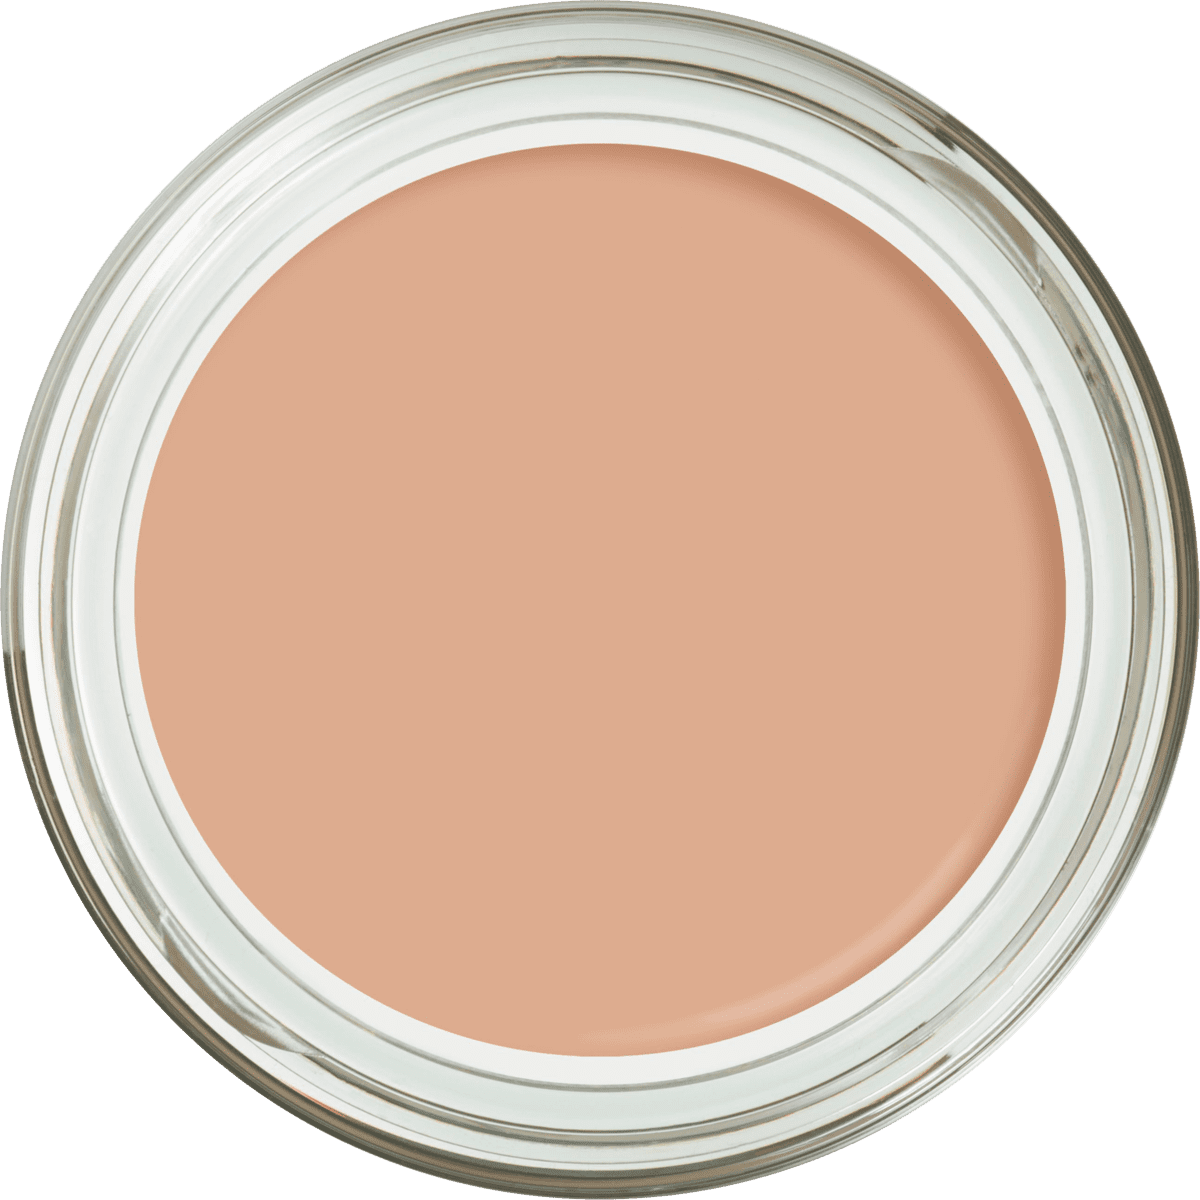 Max Factor Miracle Touch Compact Foundation 45 Warm Almond